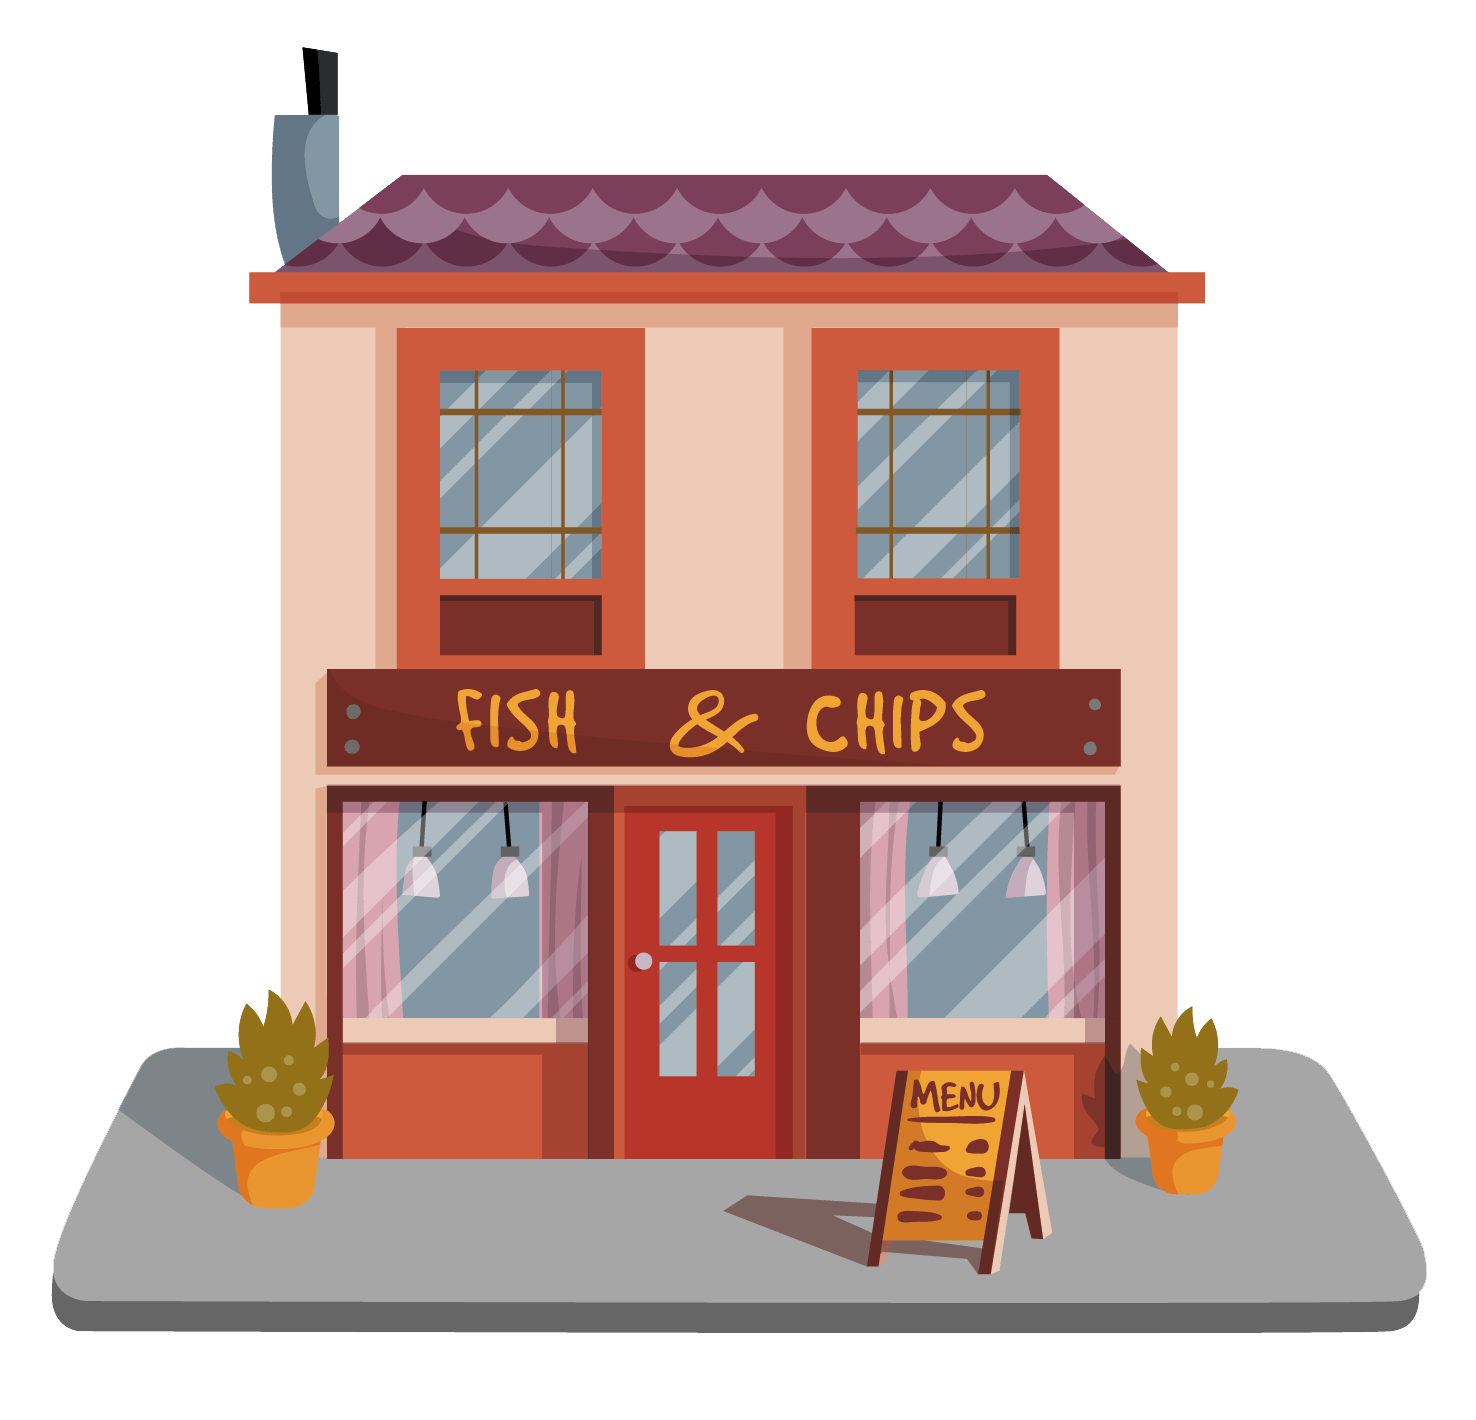 A restaurant to represent the website that could be made for your restaurant, coffee shop or food establishment.